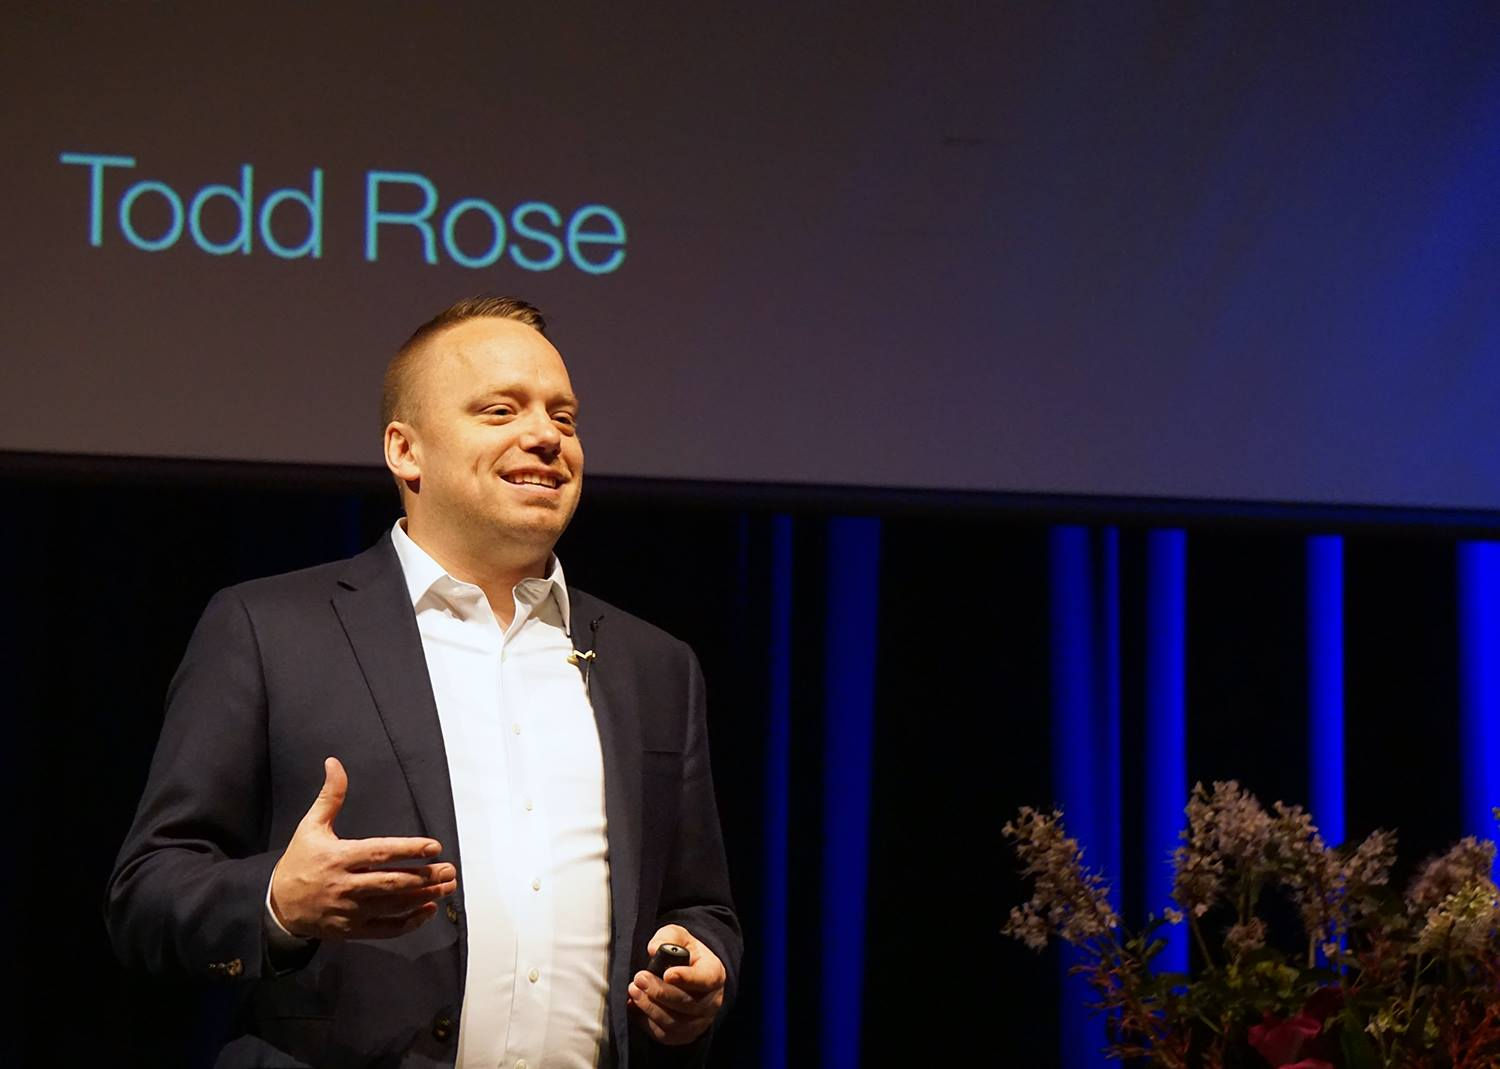 Todd Rose Speaks at ieSonoma